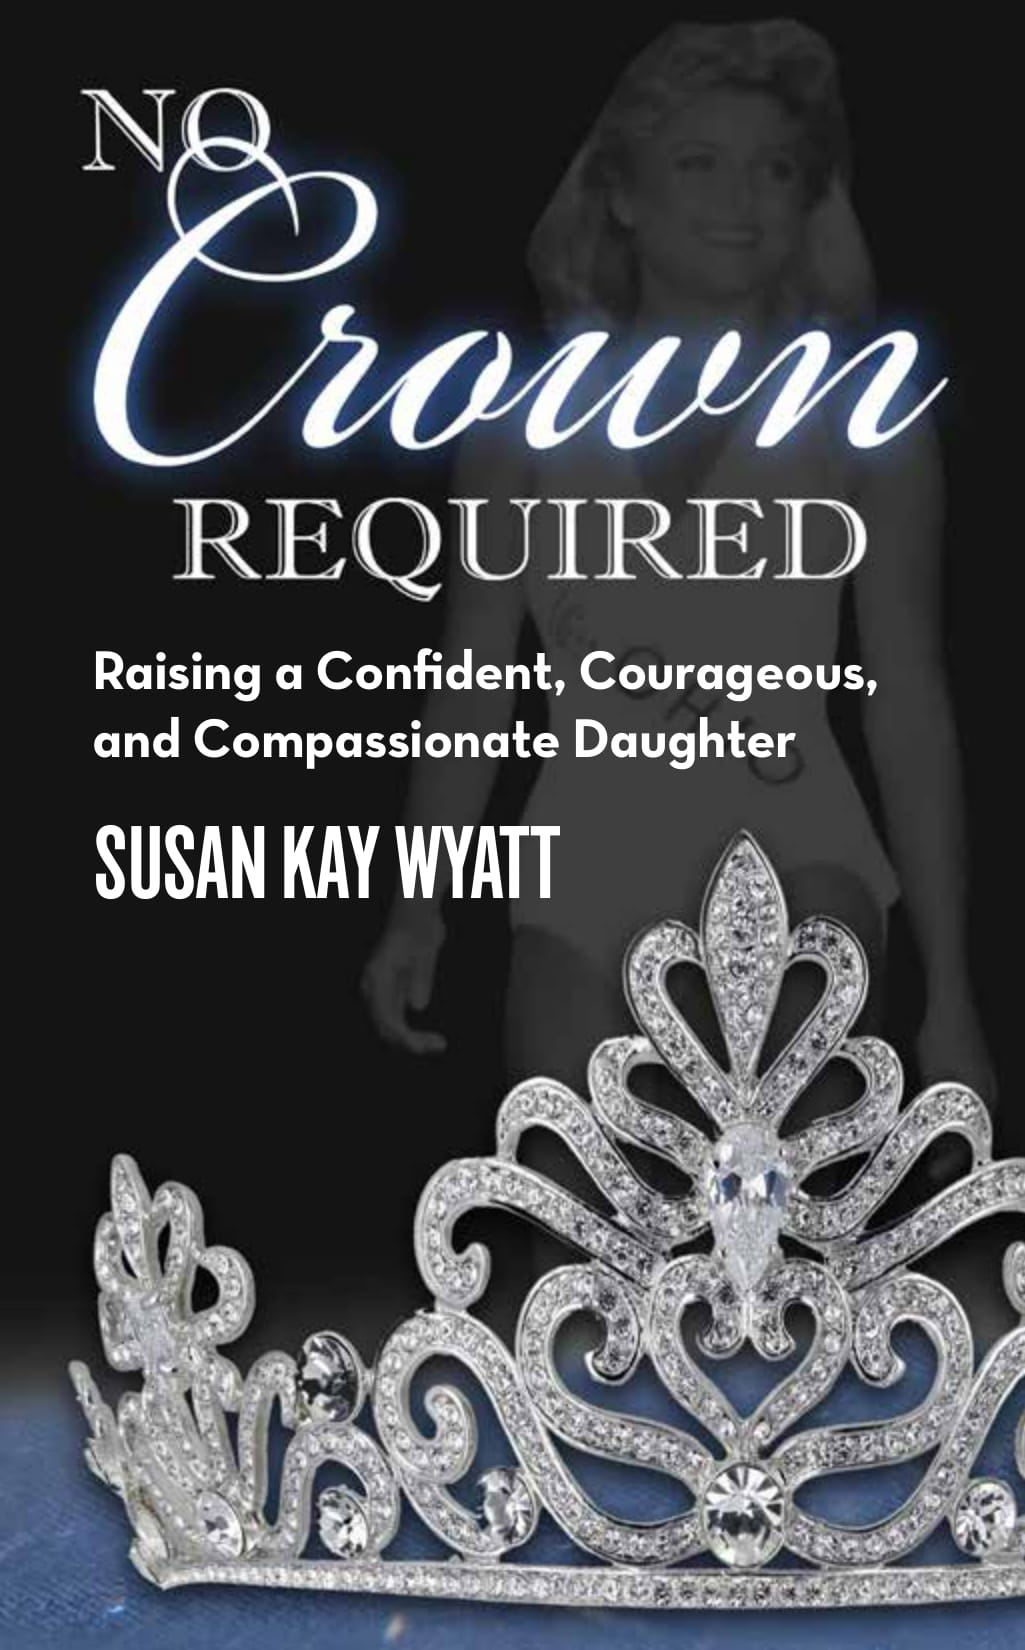 Nocrownrequired_cover-1